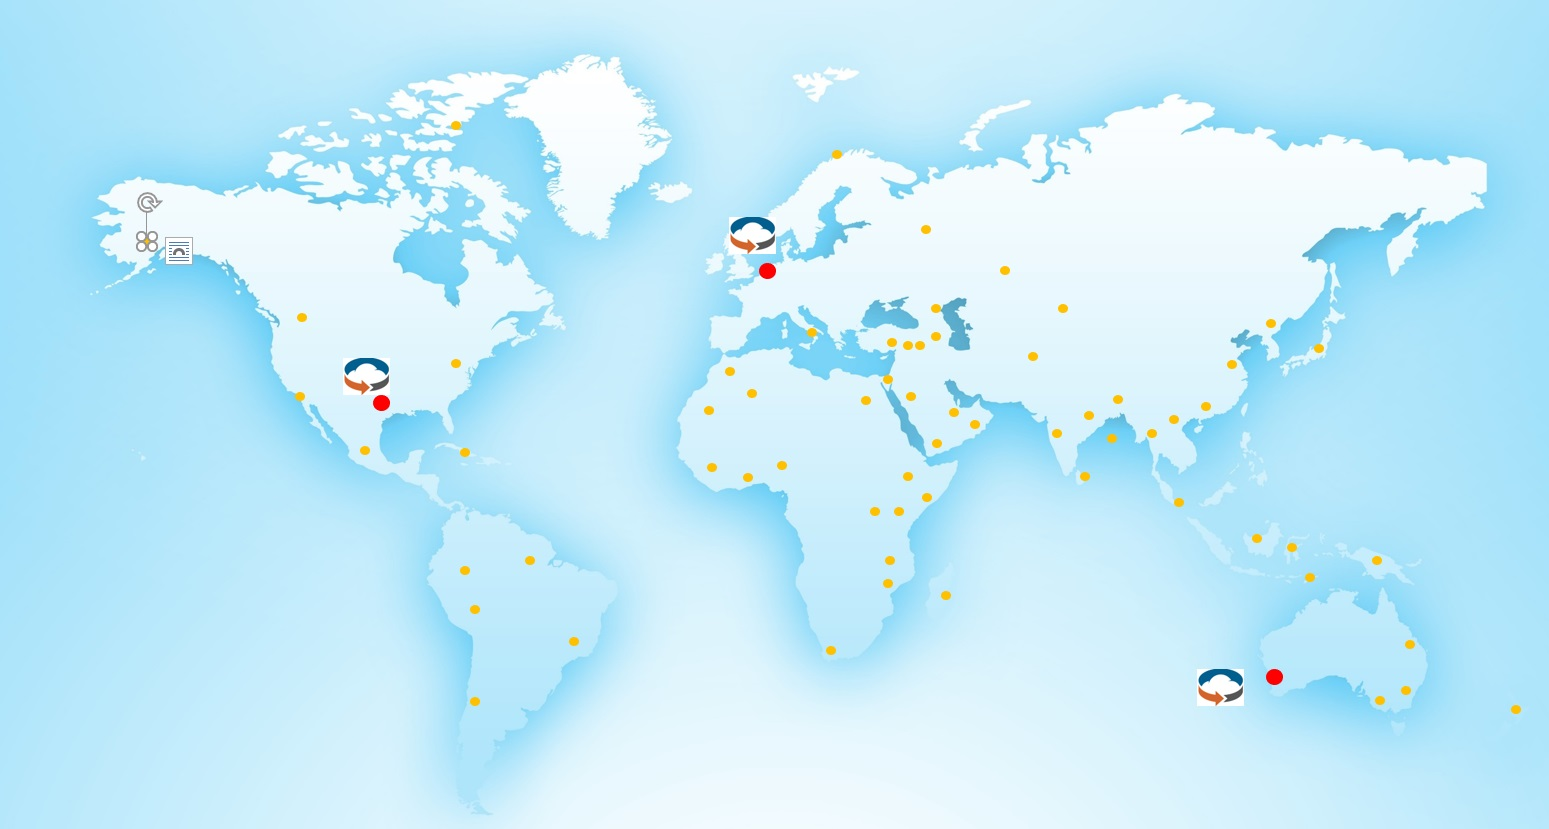 Map detailing global Tape Ark facilities and locations from where data has been liberated